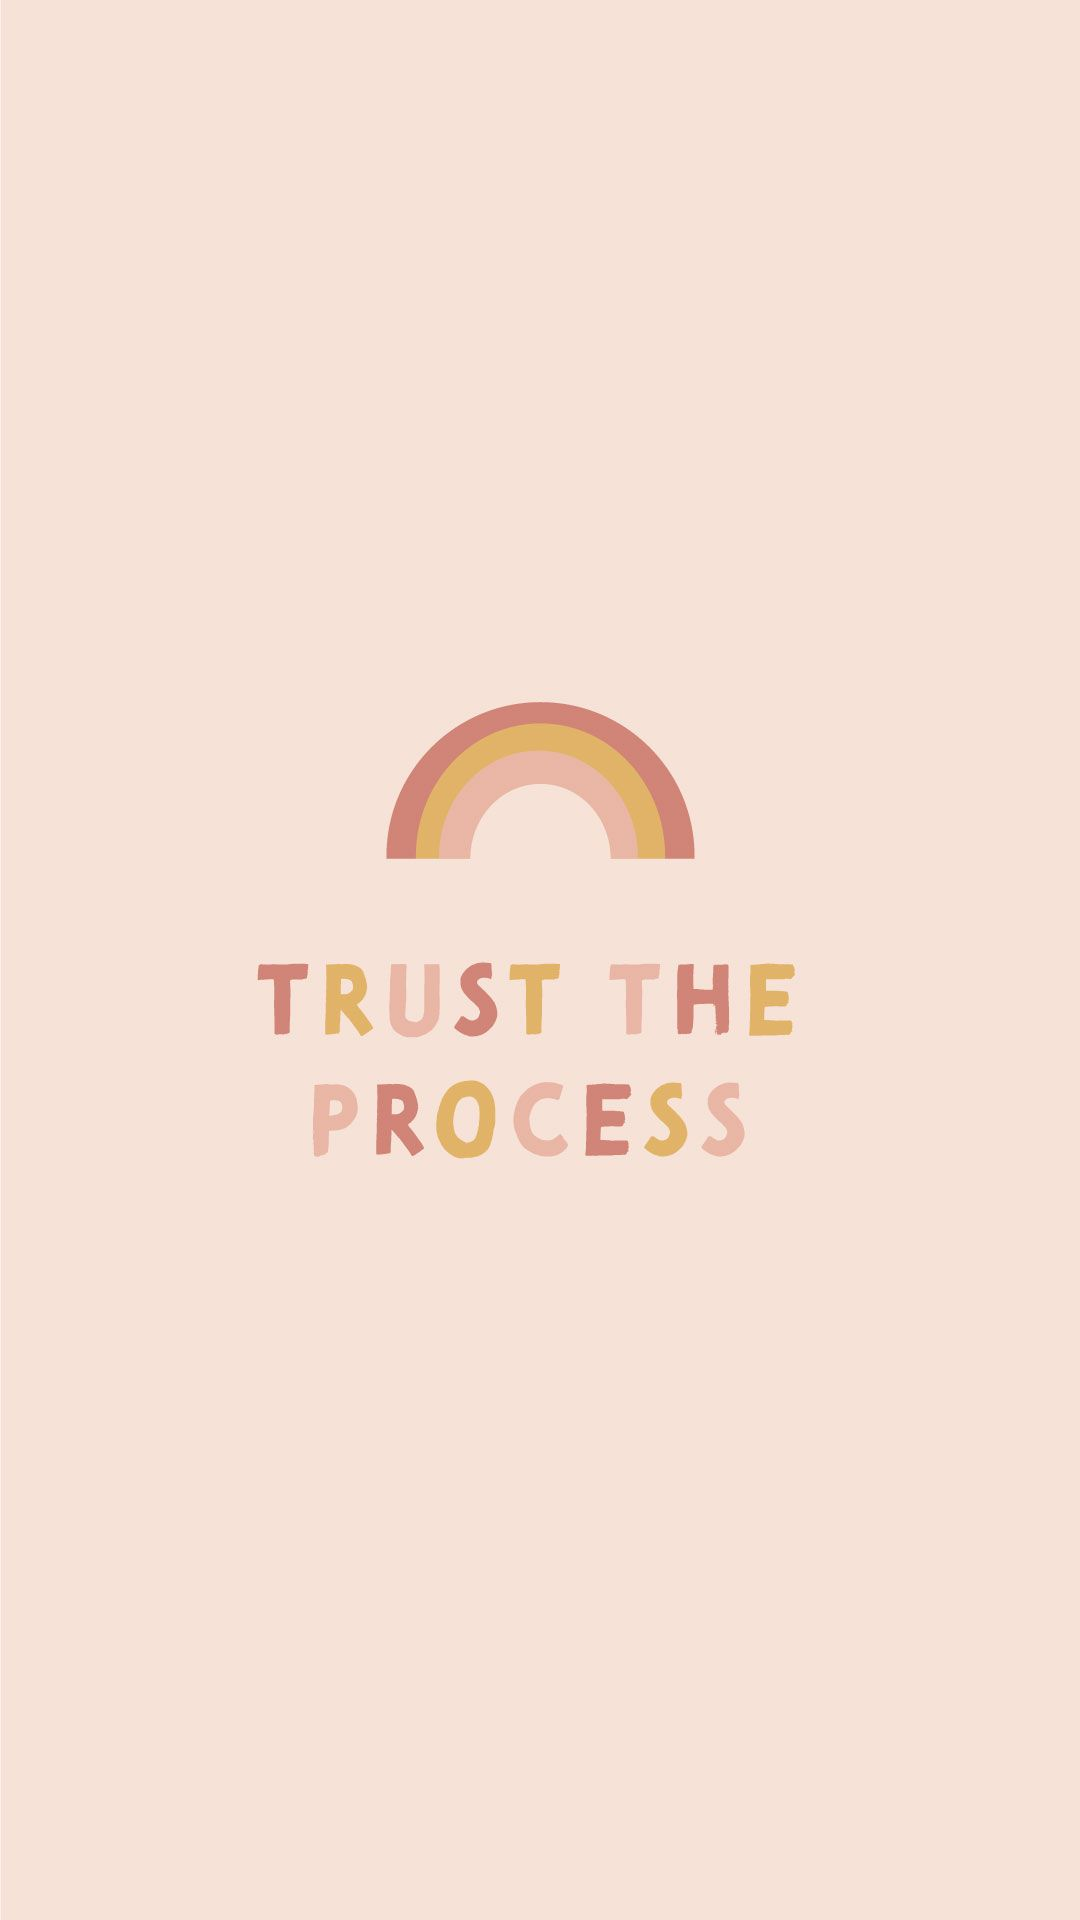 Mobile Background Wallpaper Inspirational Quote Trust The Process Trust The Process Desktop Background Quote Inspirational Quotes